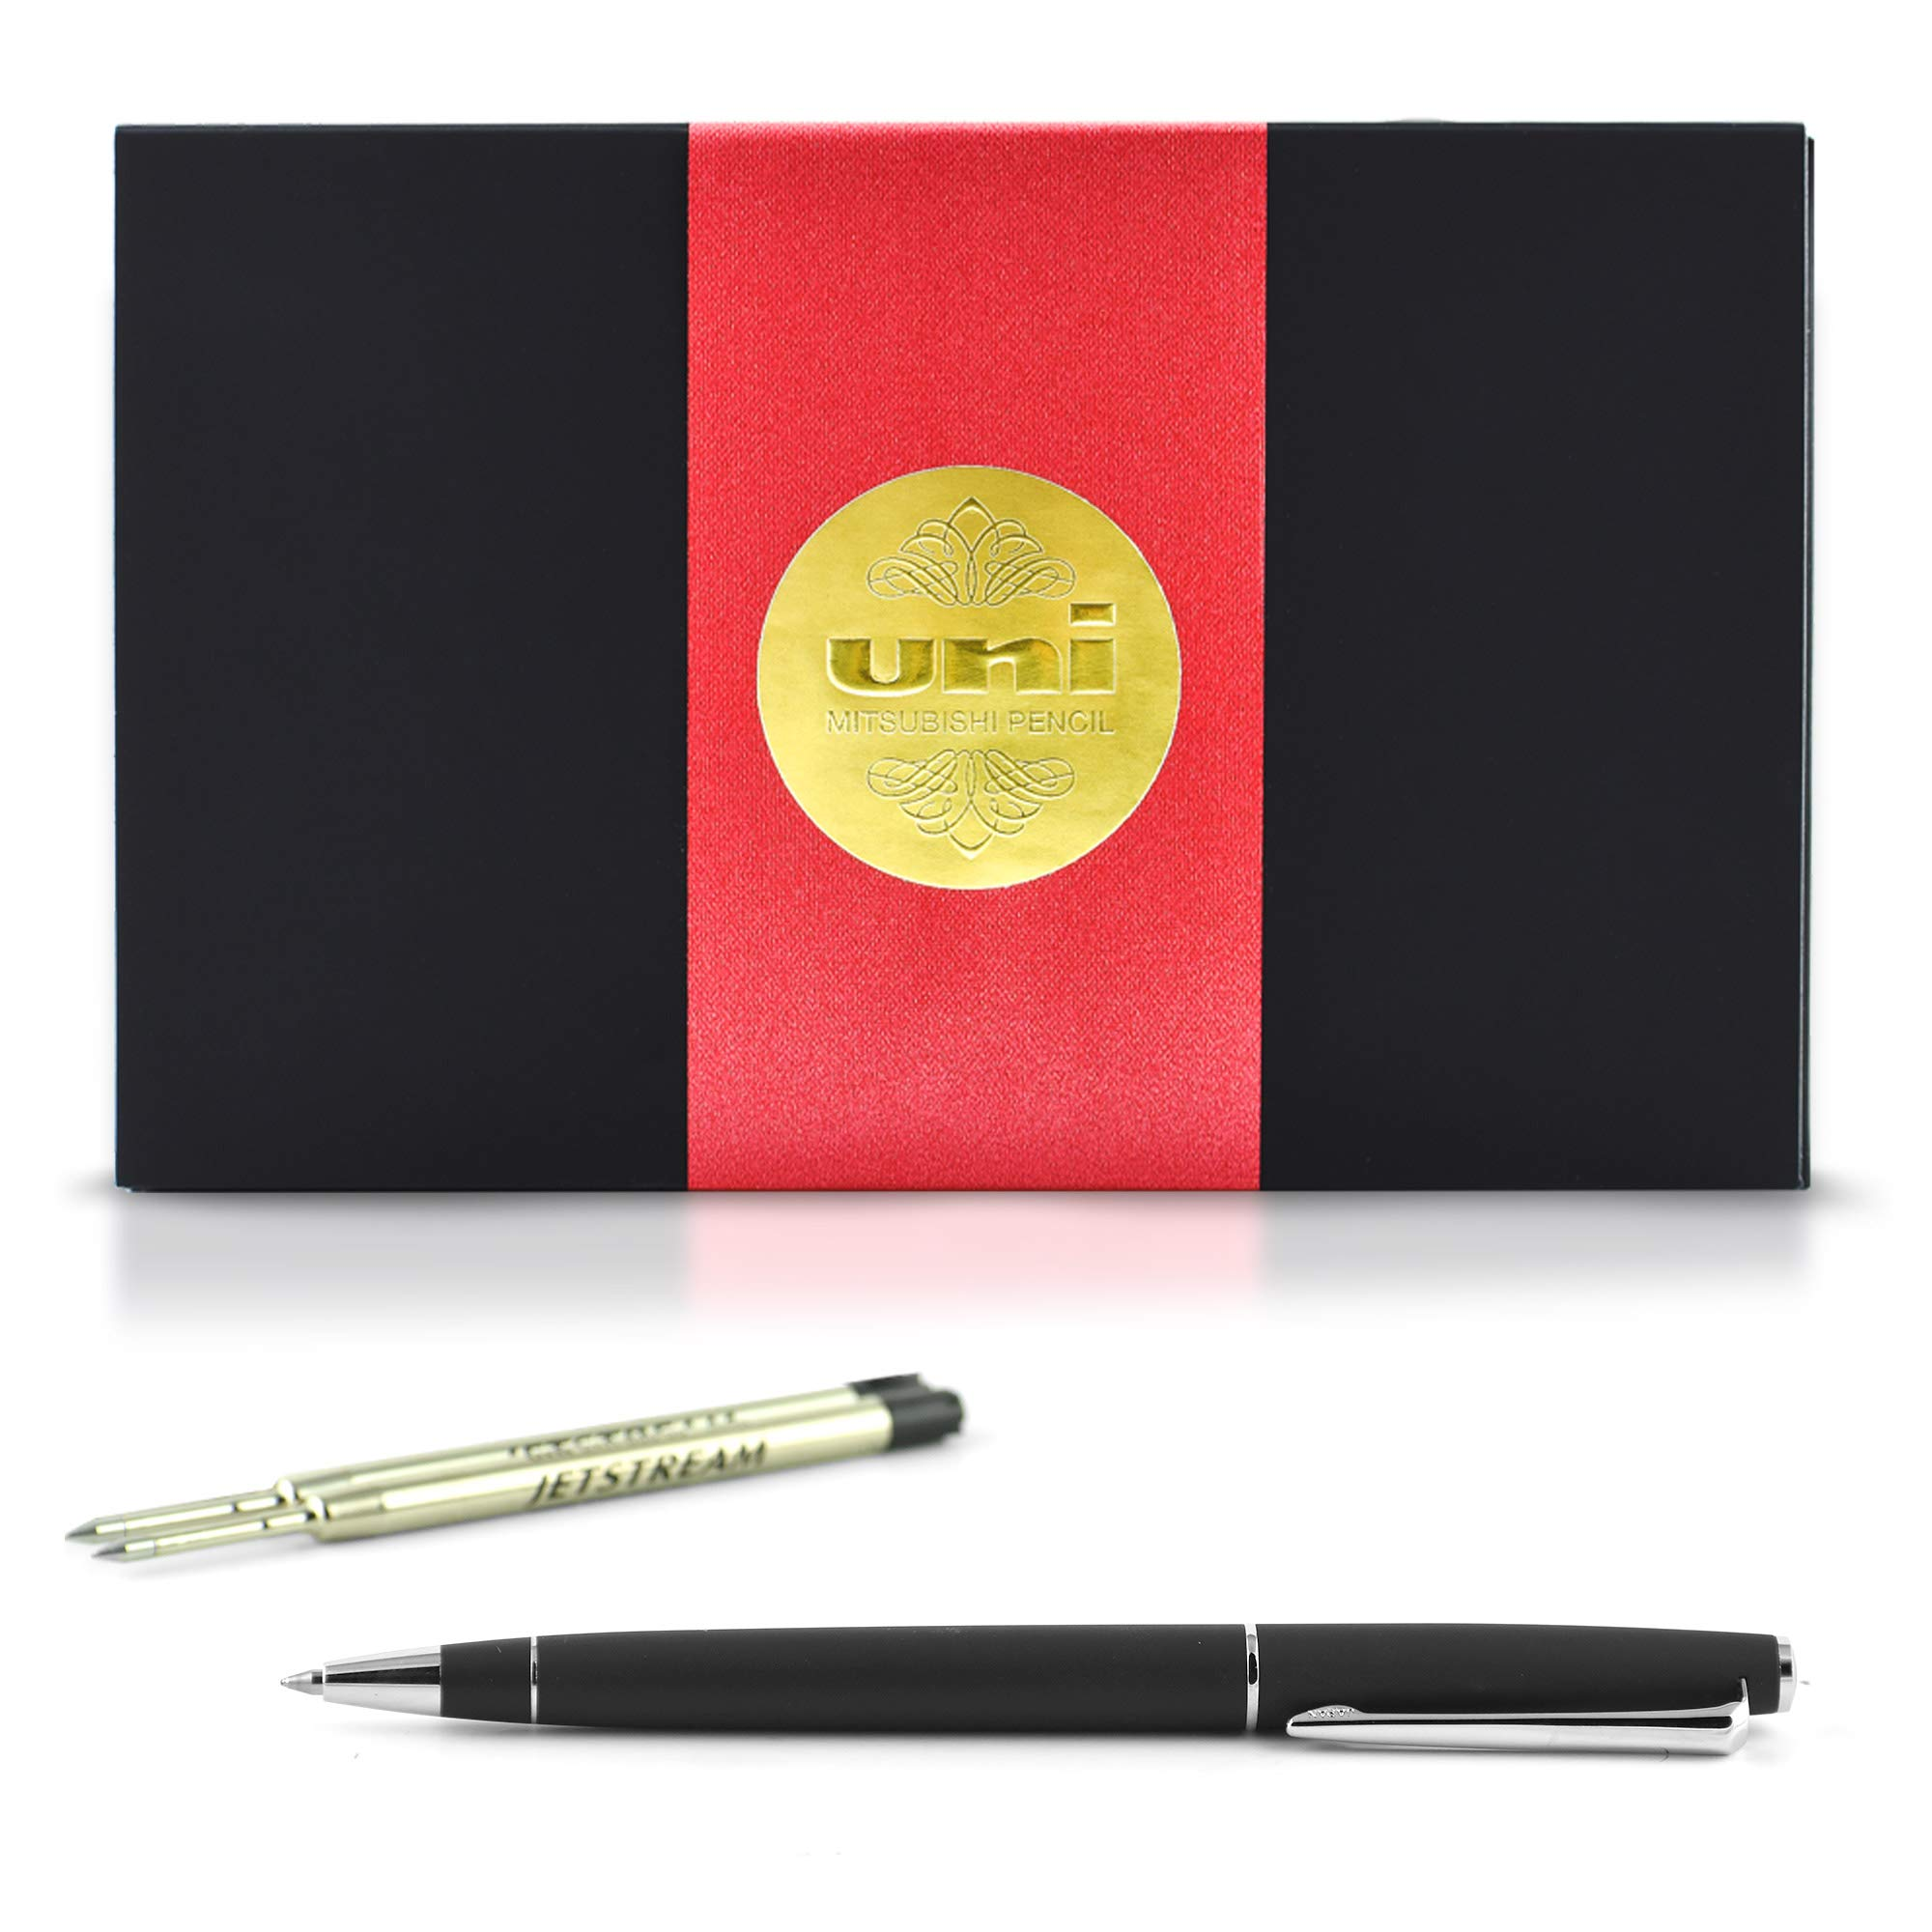 uni JETSTREAM PRIME TWIST - Includes one pen + two Parker Style refills (SXR-600-07) in Exclusive uni Gift Box - Black by uni